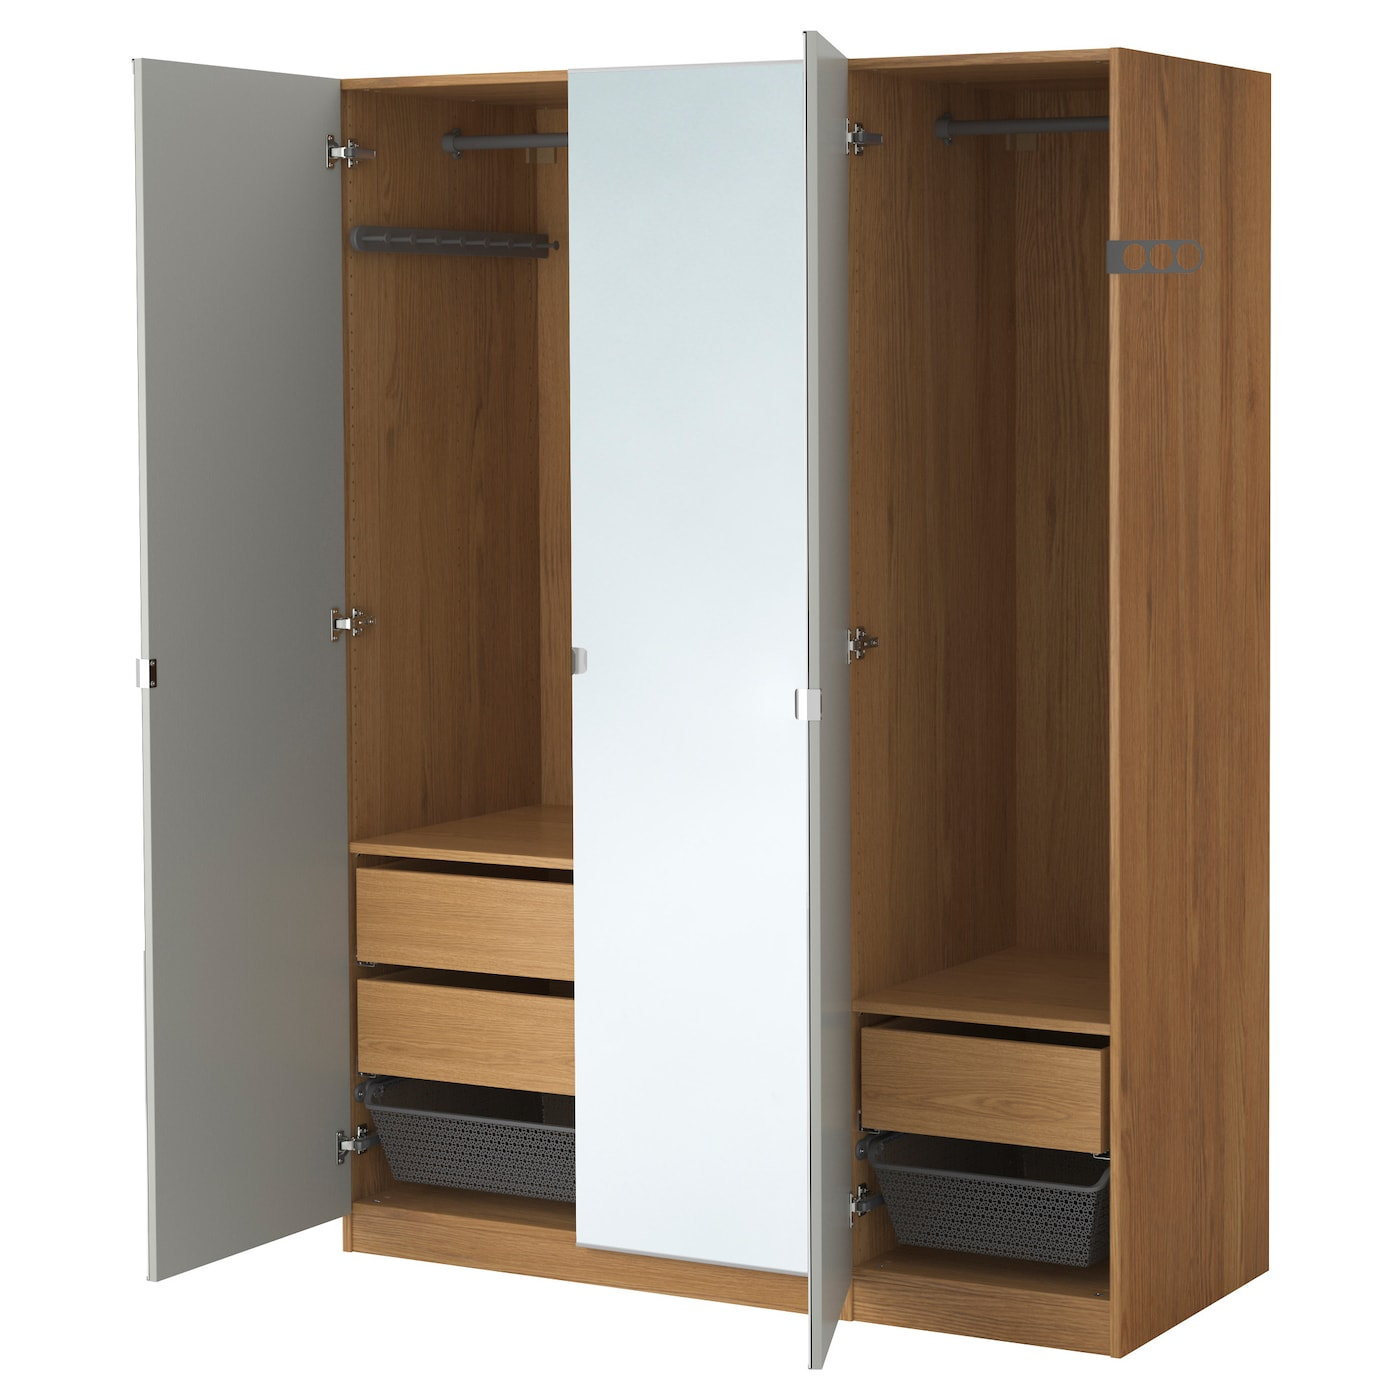 hinged en system wardrobe ikea pax interiors bedroom door wardrobes with